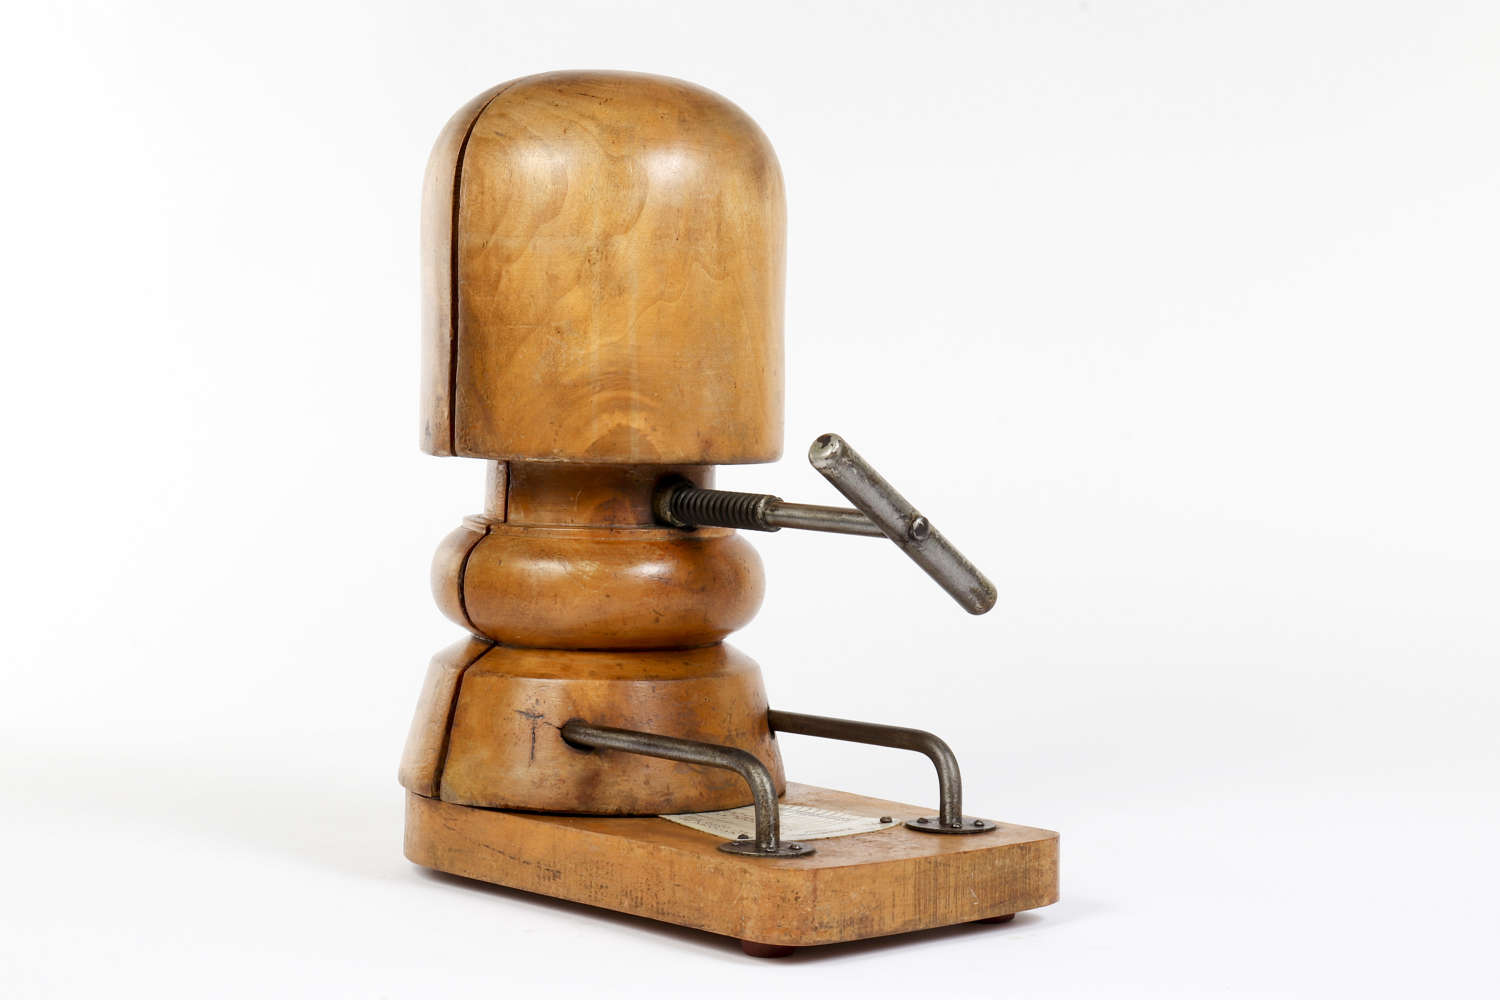 Early 20th century milliner's hat stretcher